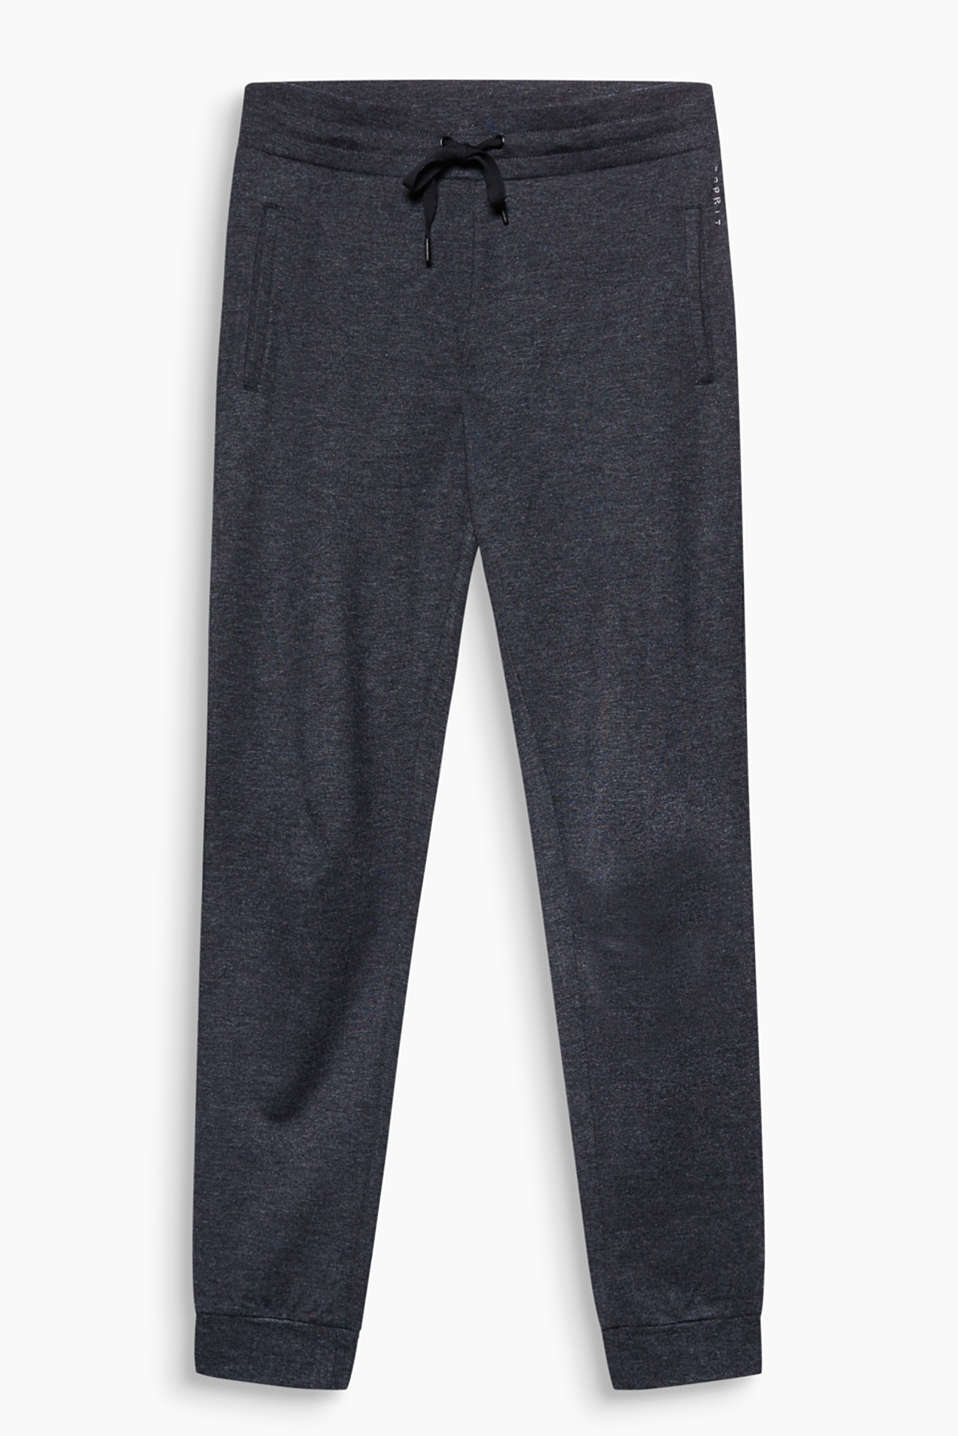 With an elasticated waistband and hem borders: tracksuit bottoms made of firmer melange jersey